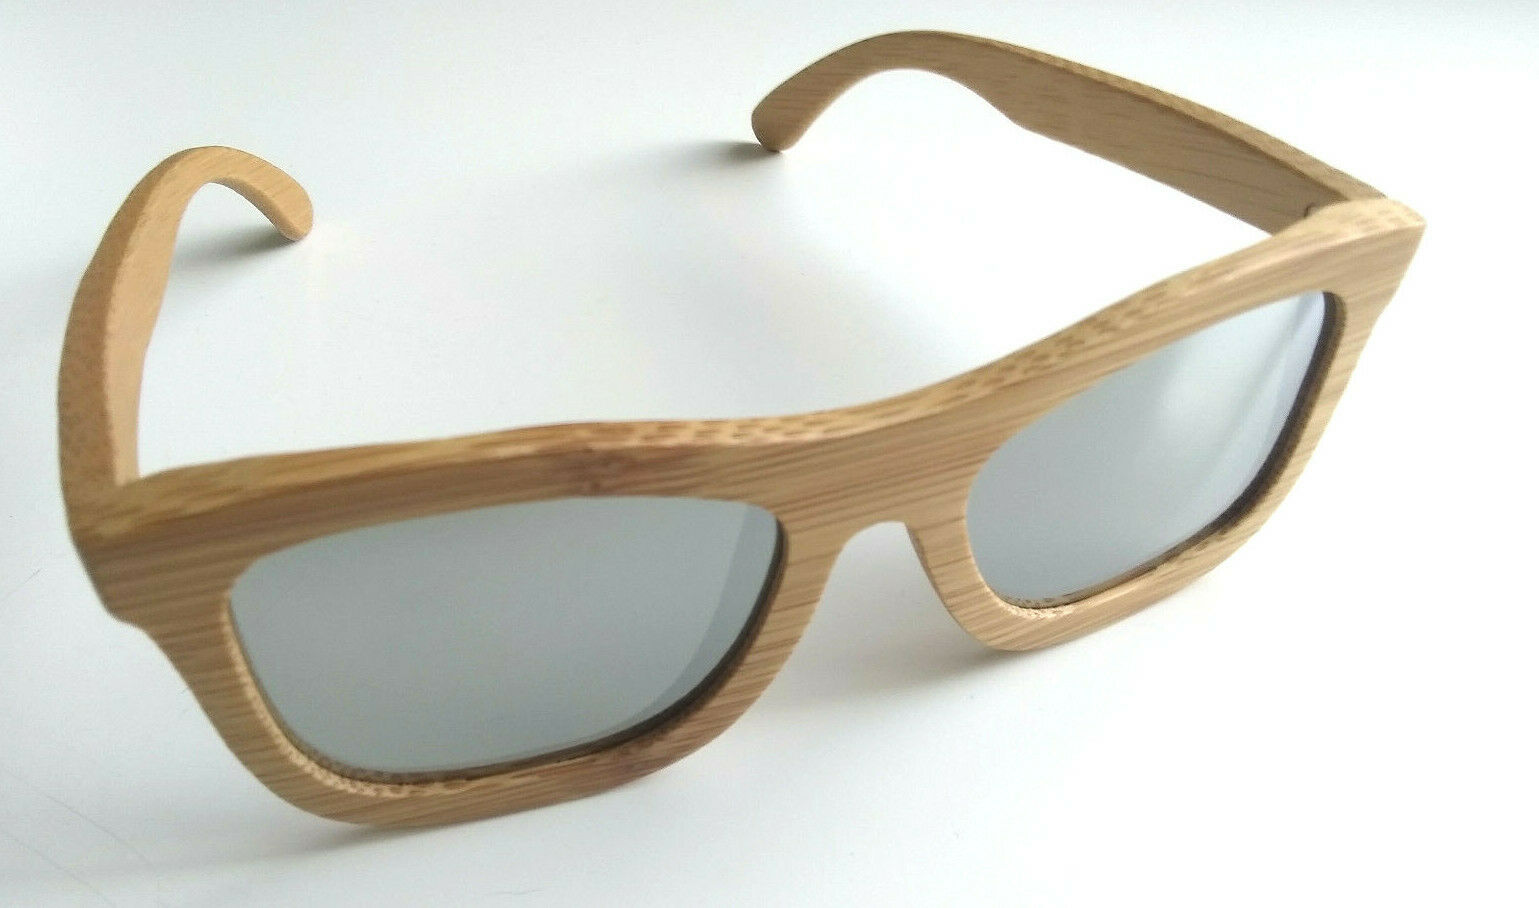 BeWell Handmade Bamboo Light Brown Wood Sunglasses Frames Silver Lenses Lightweight